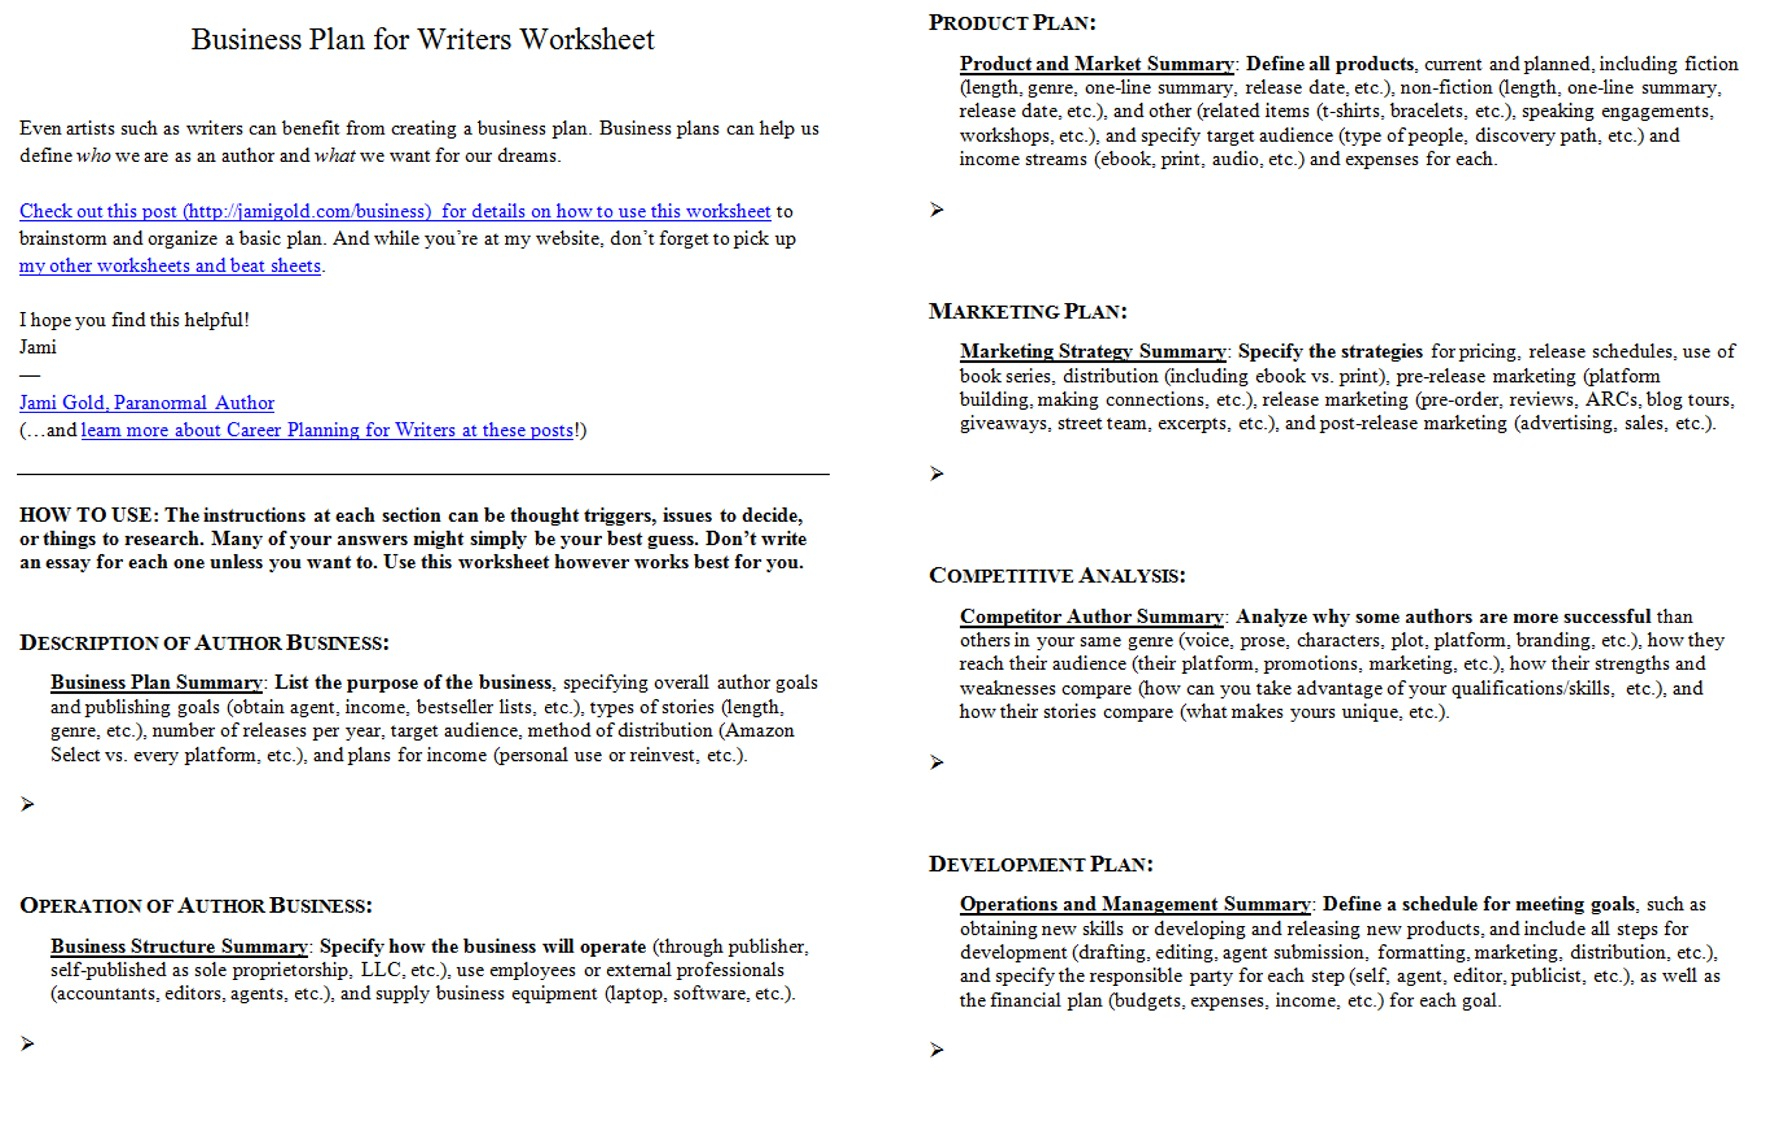 Aldiablosus  Terrific Worksheets For Writers  Jami Gold Paranormal Author With Magnificent Screen Shot Of Both Pages Of The Business Plan For Writers Worksheet With Beautiful Mood And Tone Worksheet Also Arrays Worksheets Nd Grade In Addition Fact Families Worksheets First Grade And Blending Worksheets For Kindergarten As Well As Comparing Ratios Worksheet Additionally Division Worksheets Free From Jamigoldcom With Aldiablosus  Magnificent Worksheets For Writers  Jami Gold Paranormal Author With Beautiful Screen Shot Of Both Pages Of The Business Plan For Writers Worksheet And Terrific Mood And Tone Worksheet Also Arrays Worksheets Nd Grade In Addition Fact Families Worksheets First Grade From Jamigoldcom